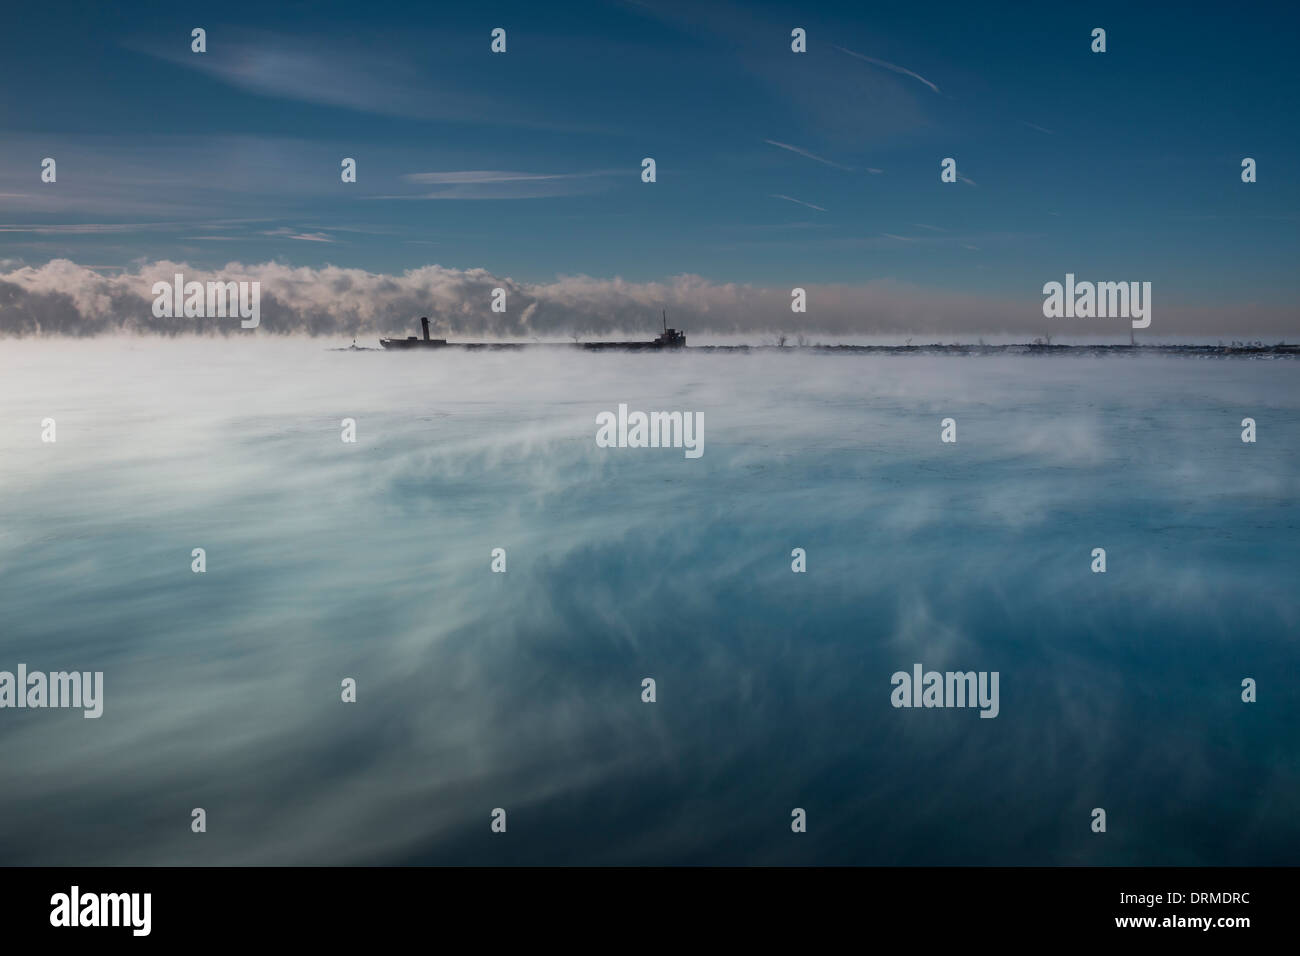 Waves of steam fog waft along the water of Lake Ontario as a frigid minus -25C airmass engulfs the region - Stock Image